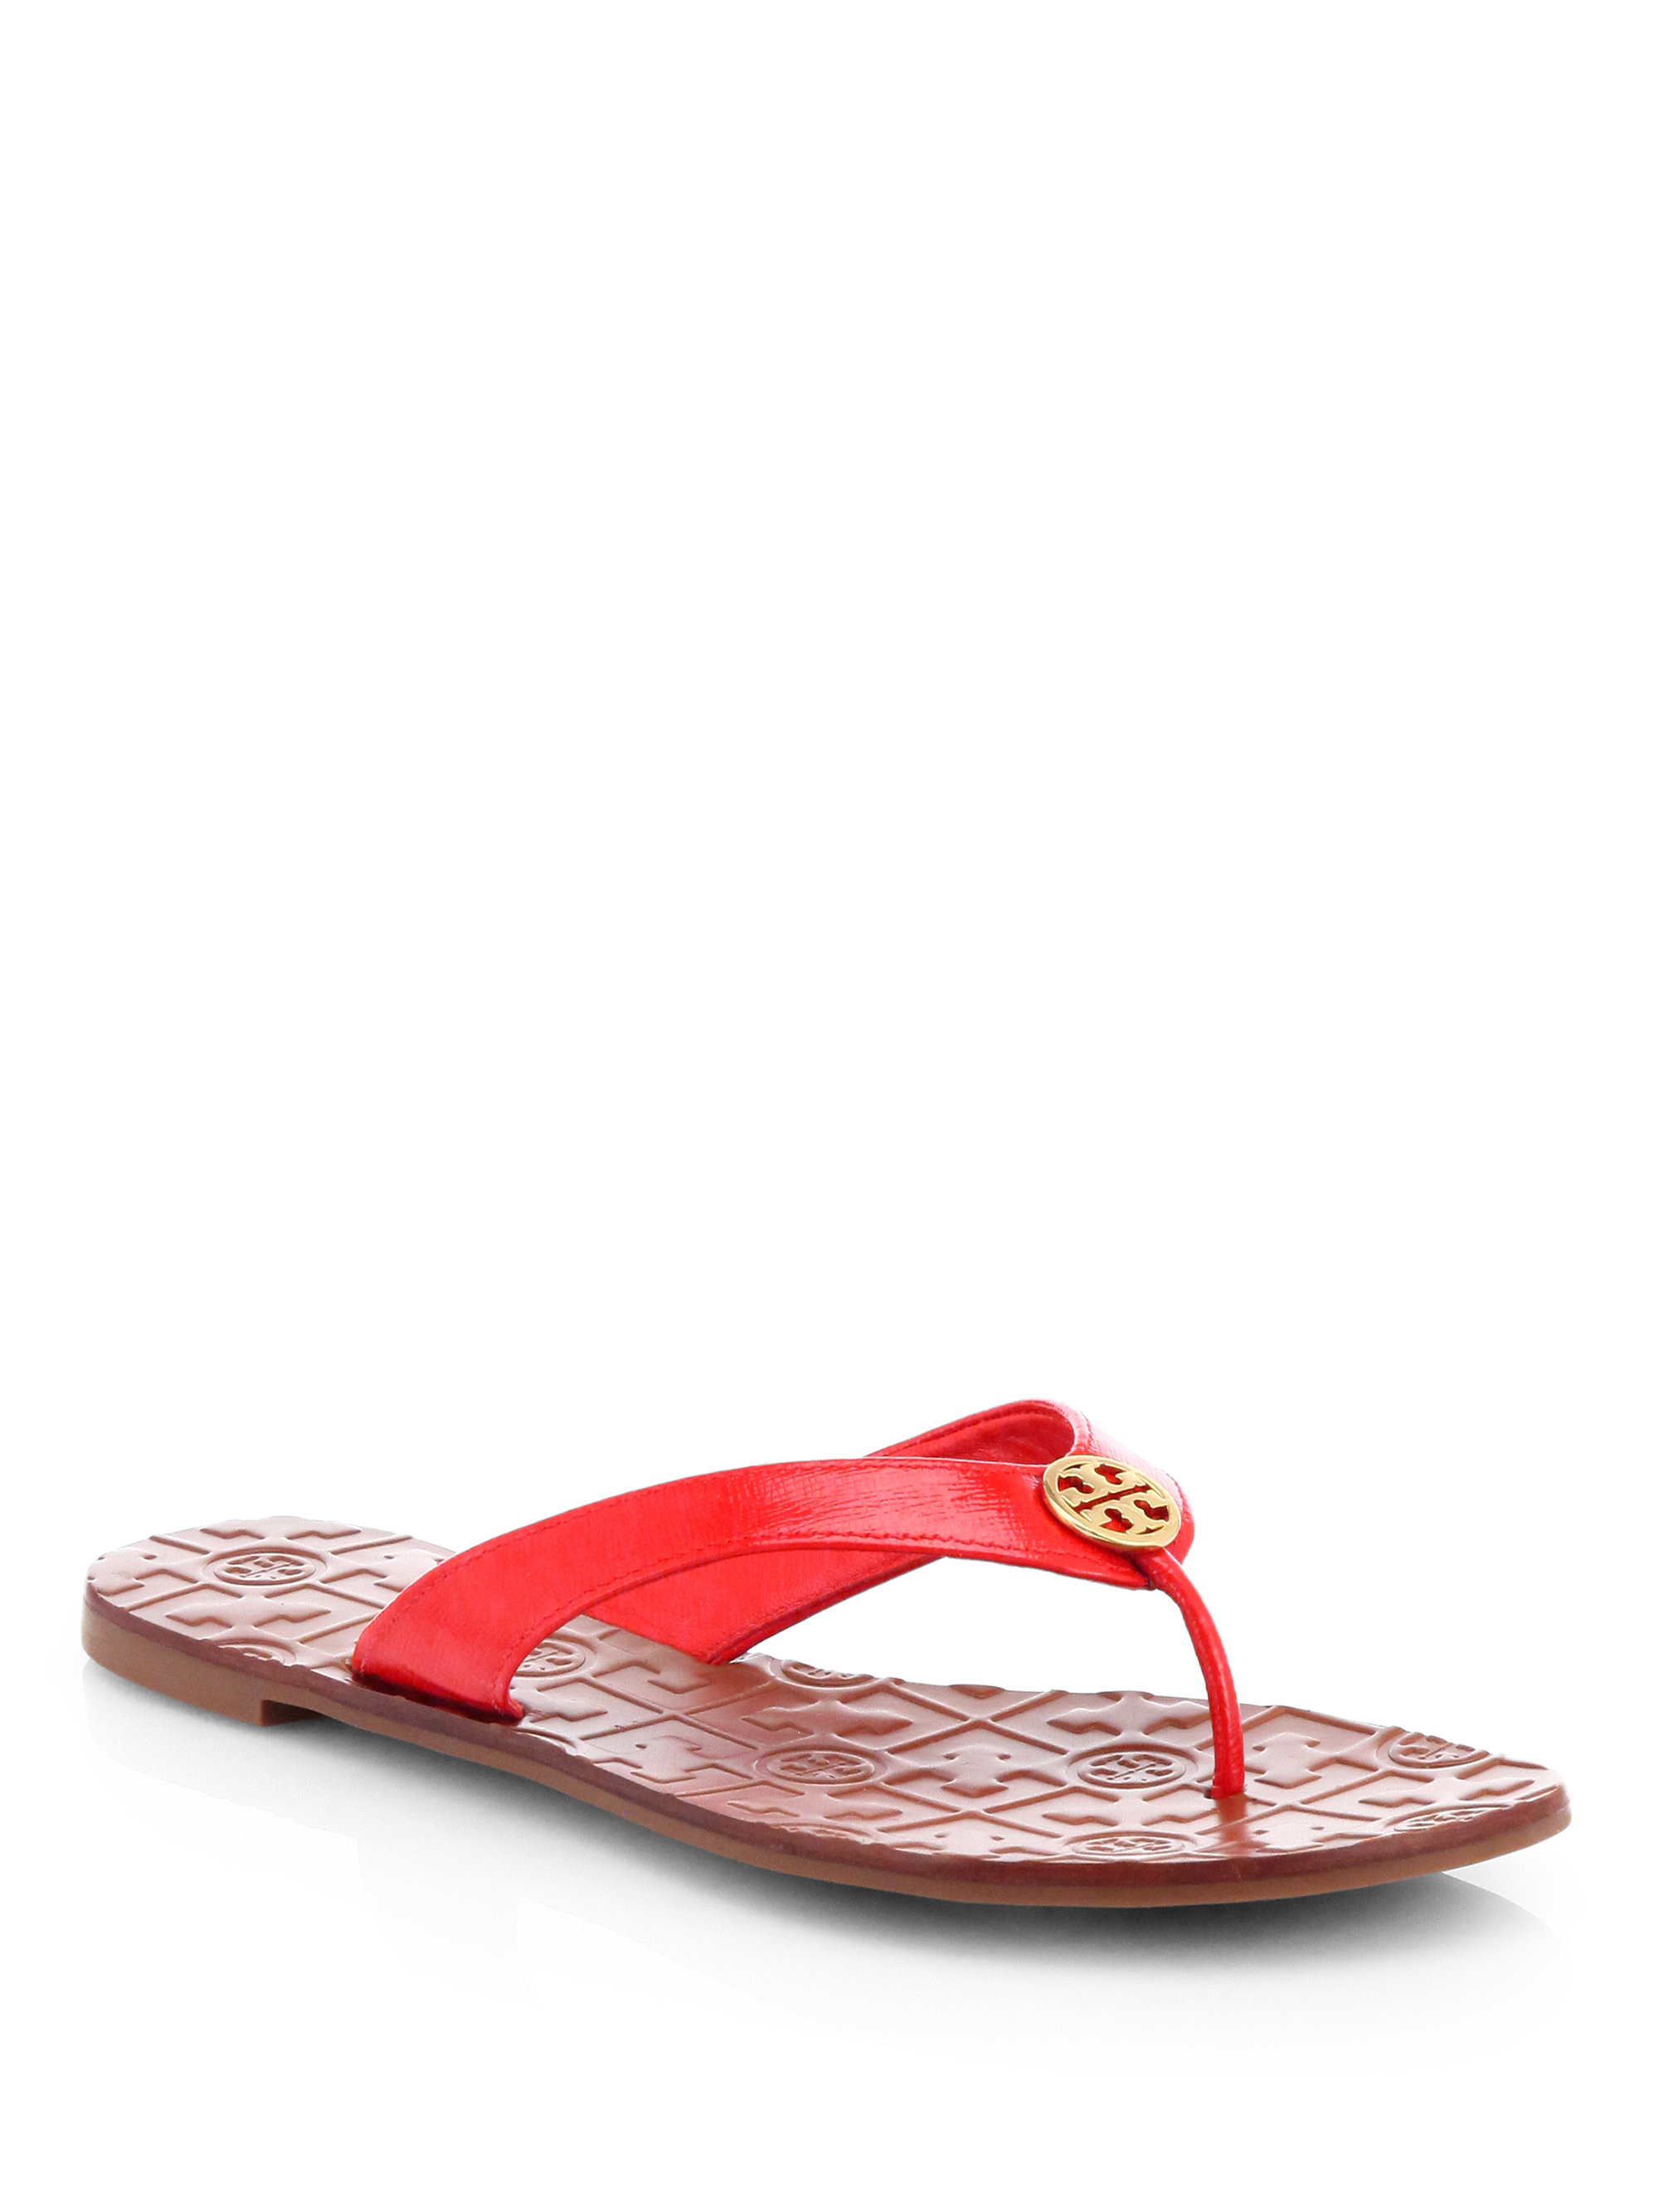 1aedf5469 Tory Burch Thora 2 Patent Leather Thong Sandals in Red - Lyst